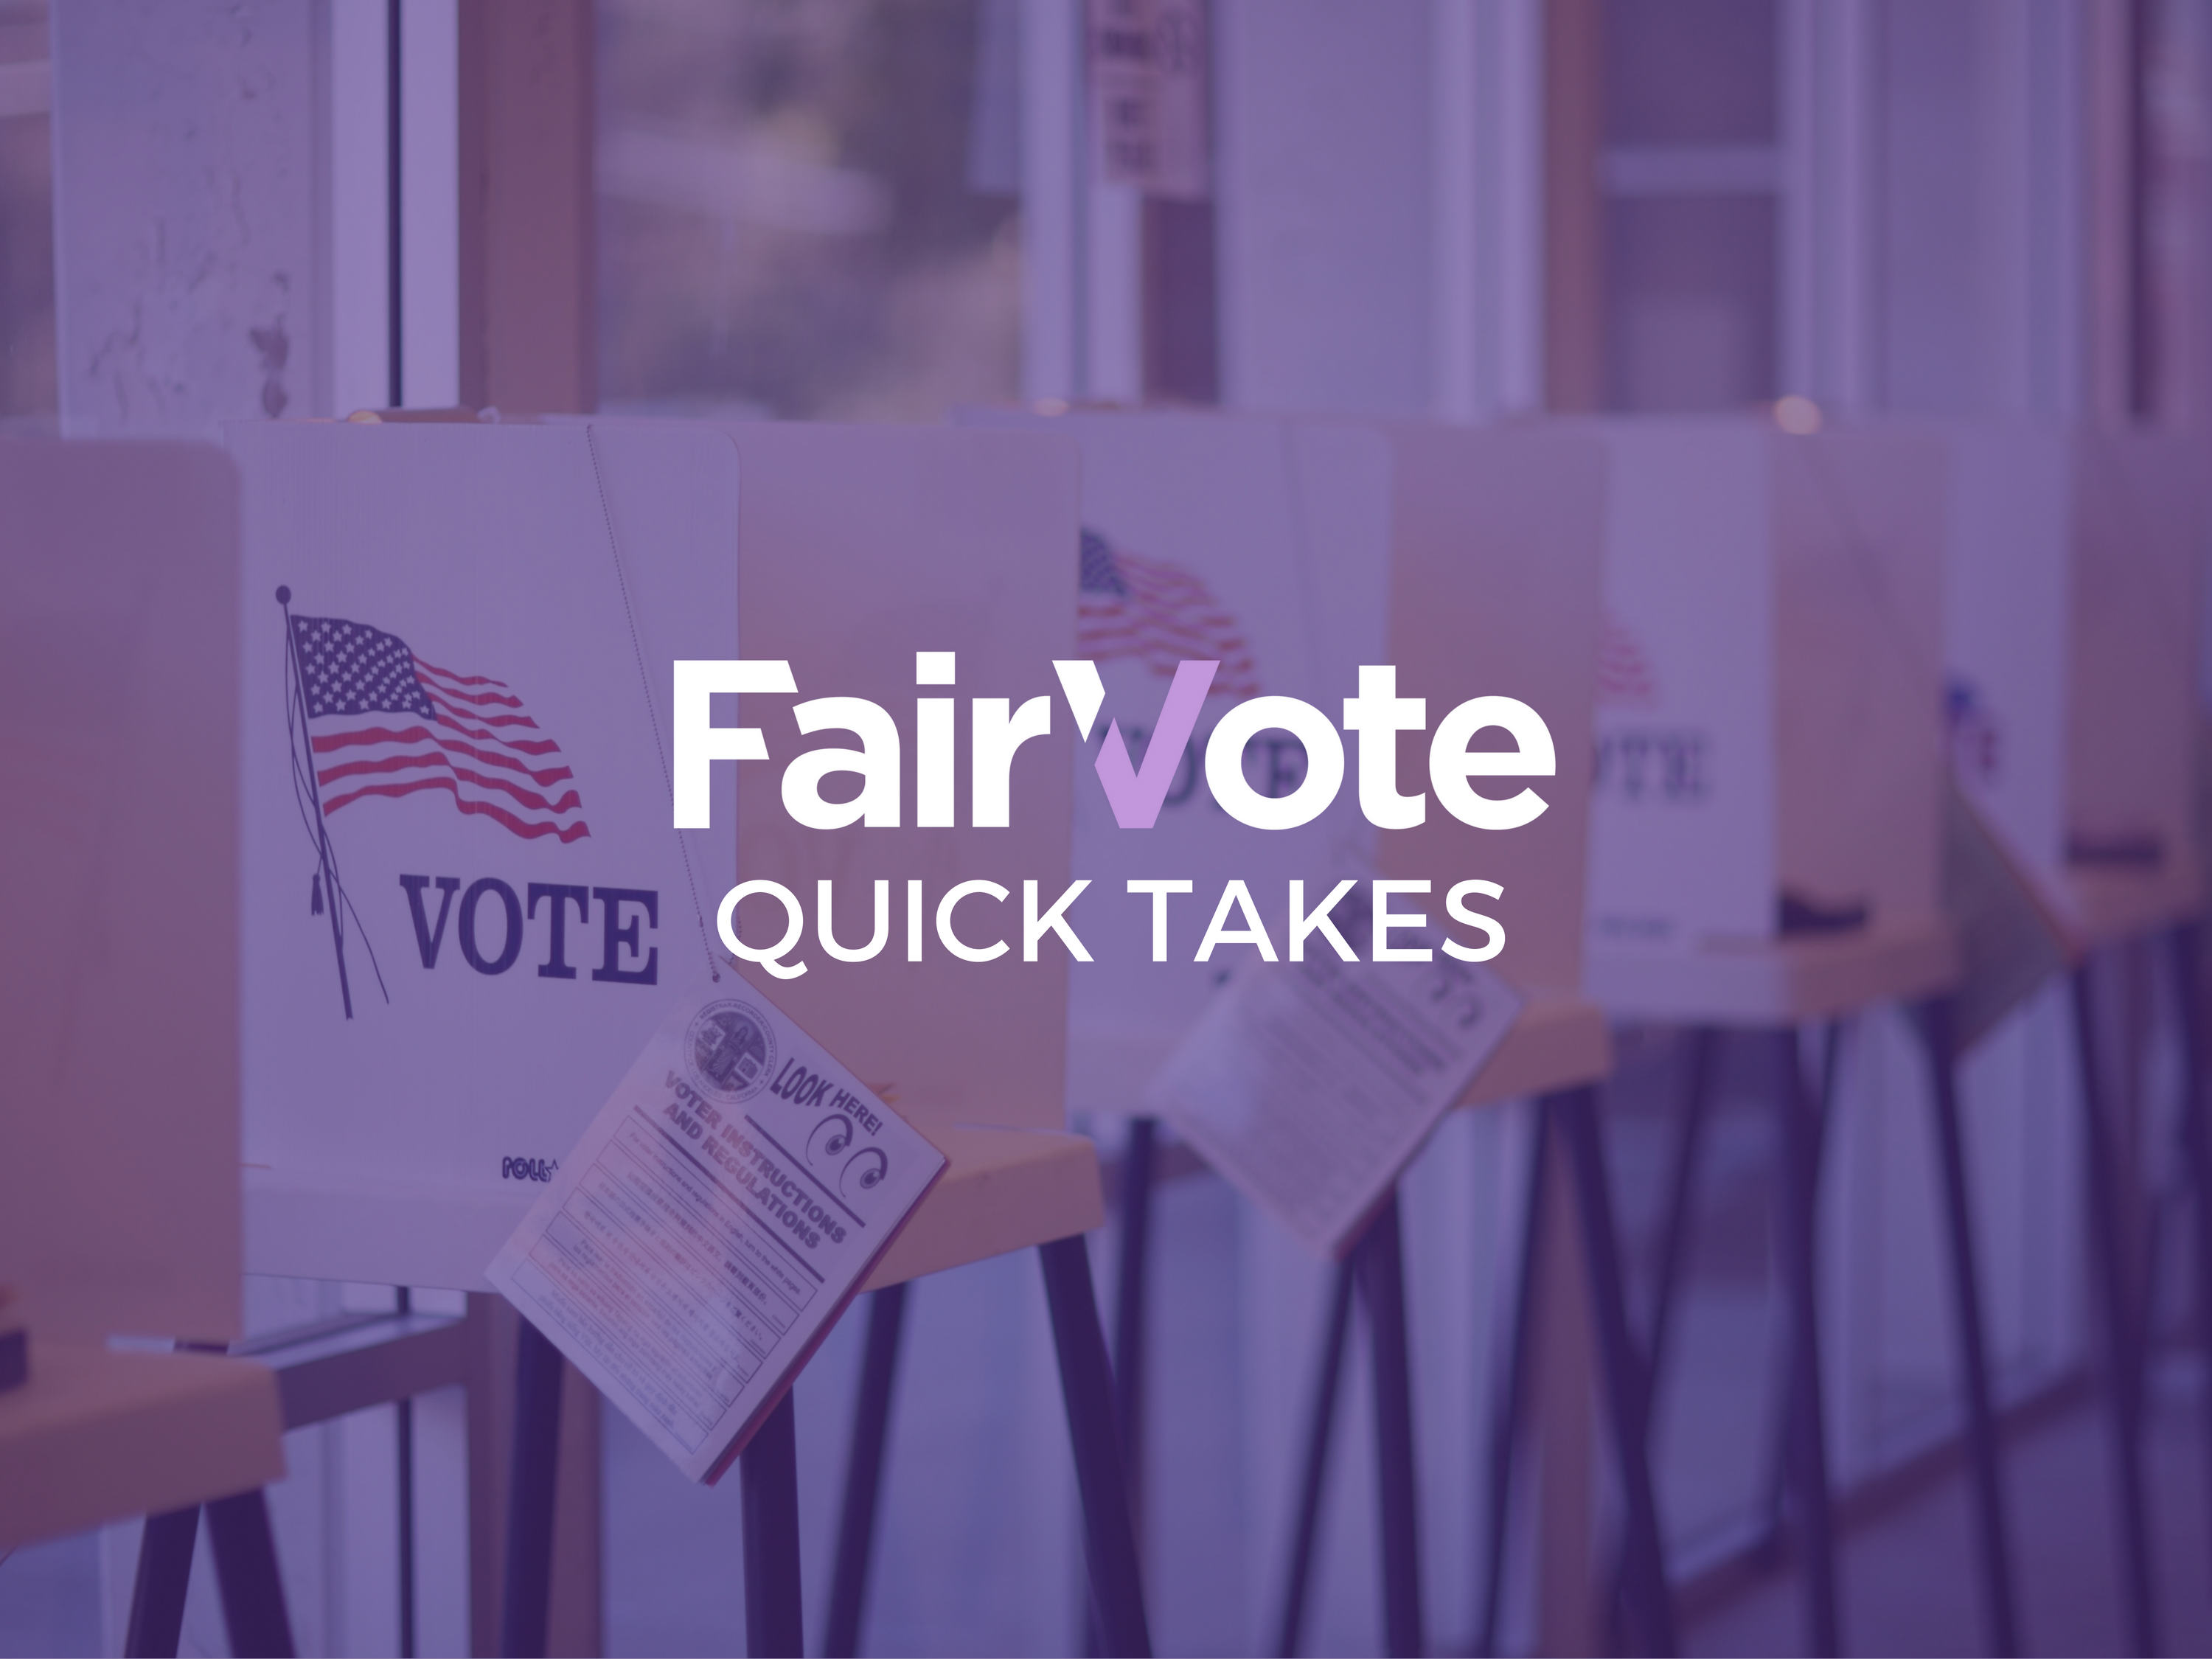 Happy holidays, from FairVote